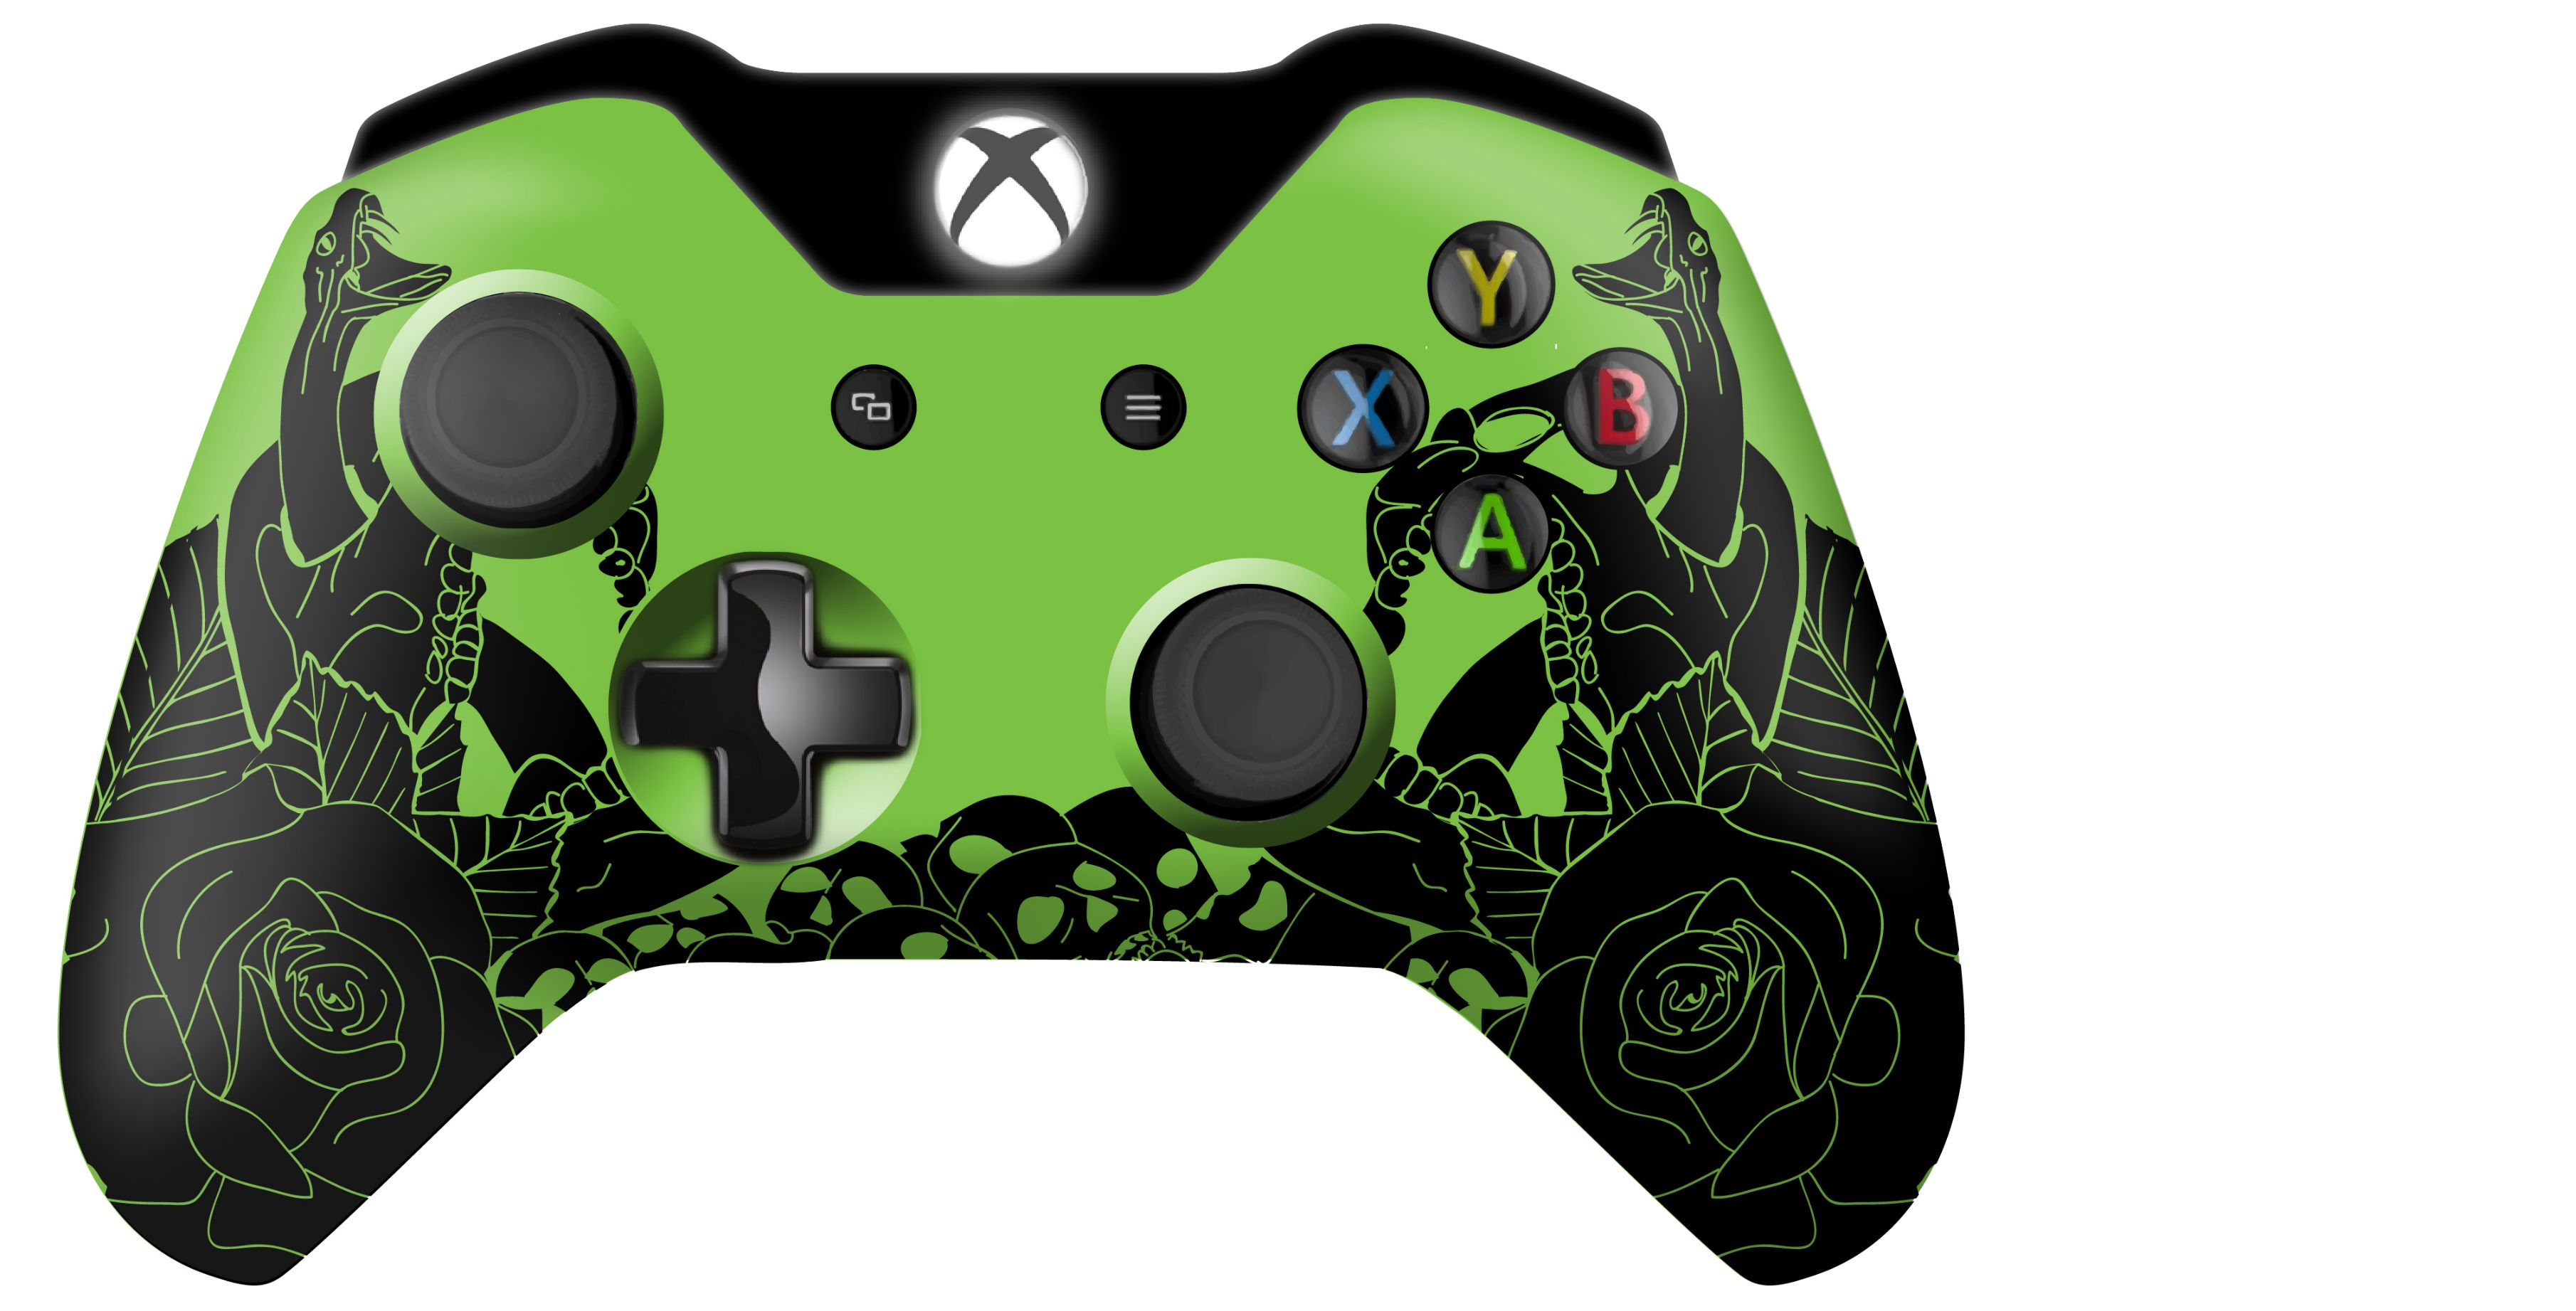 3620x1843 My Design So Far For The Xbox Controller Contest Any